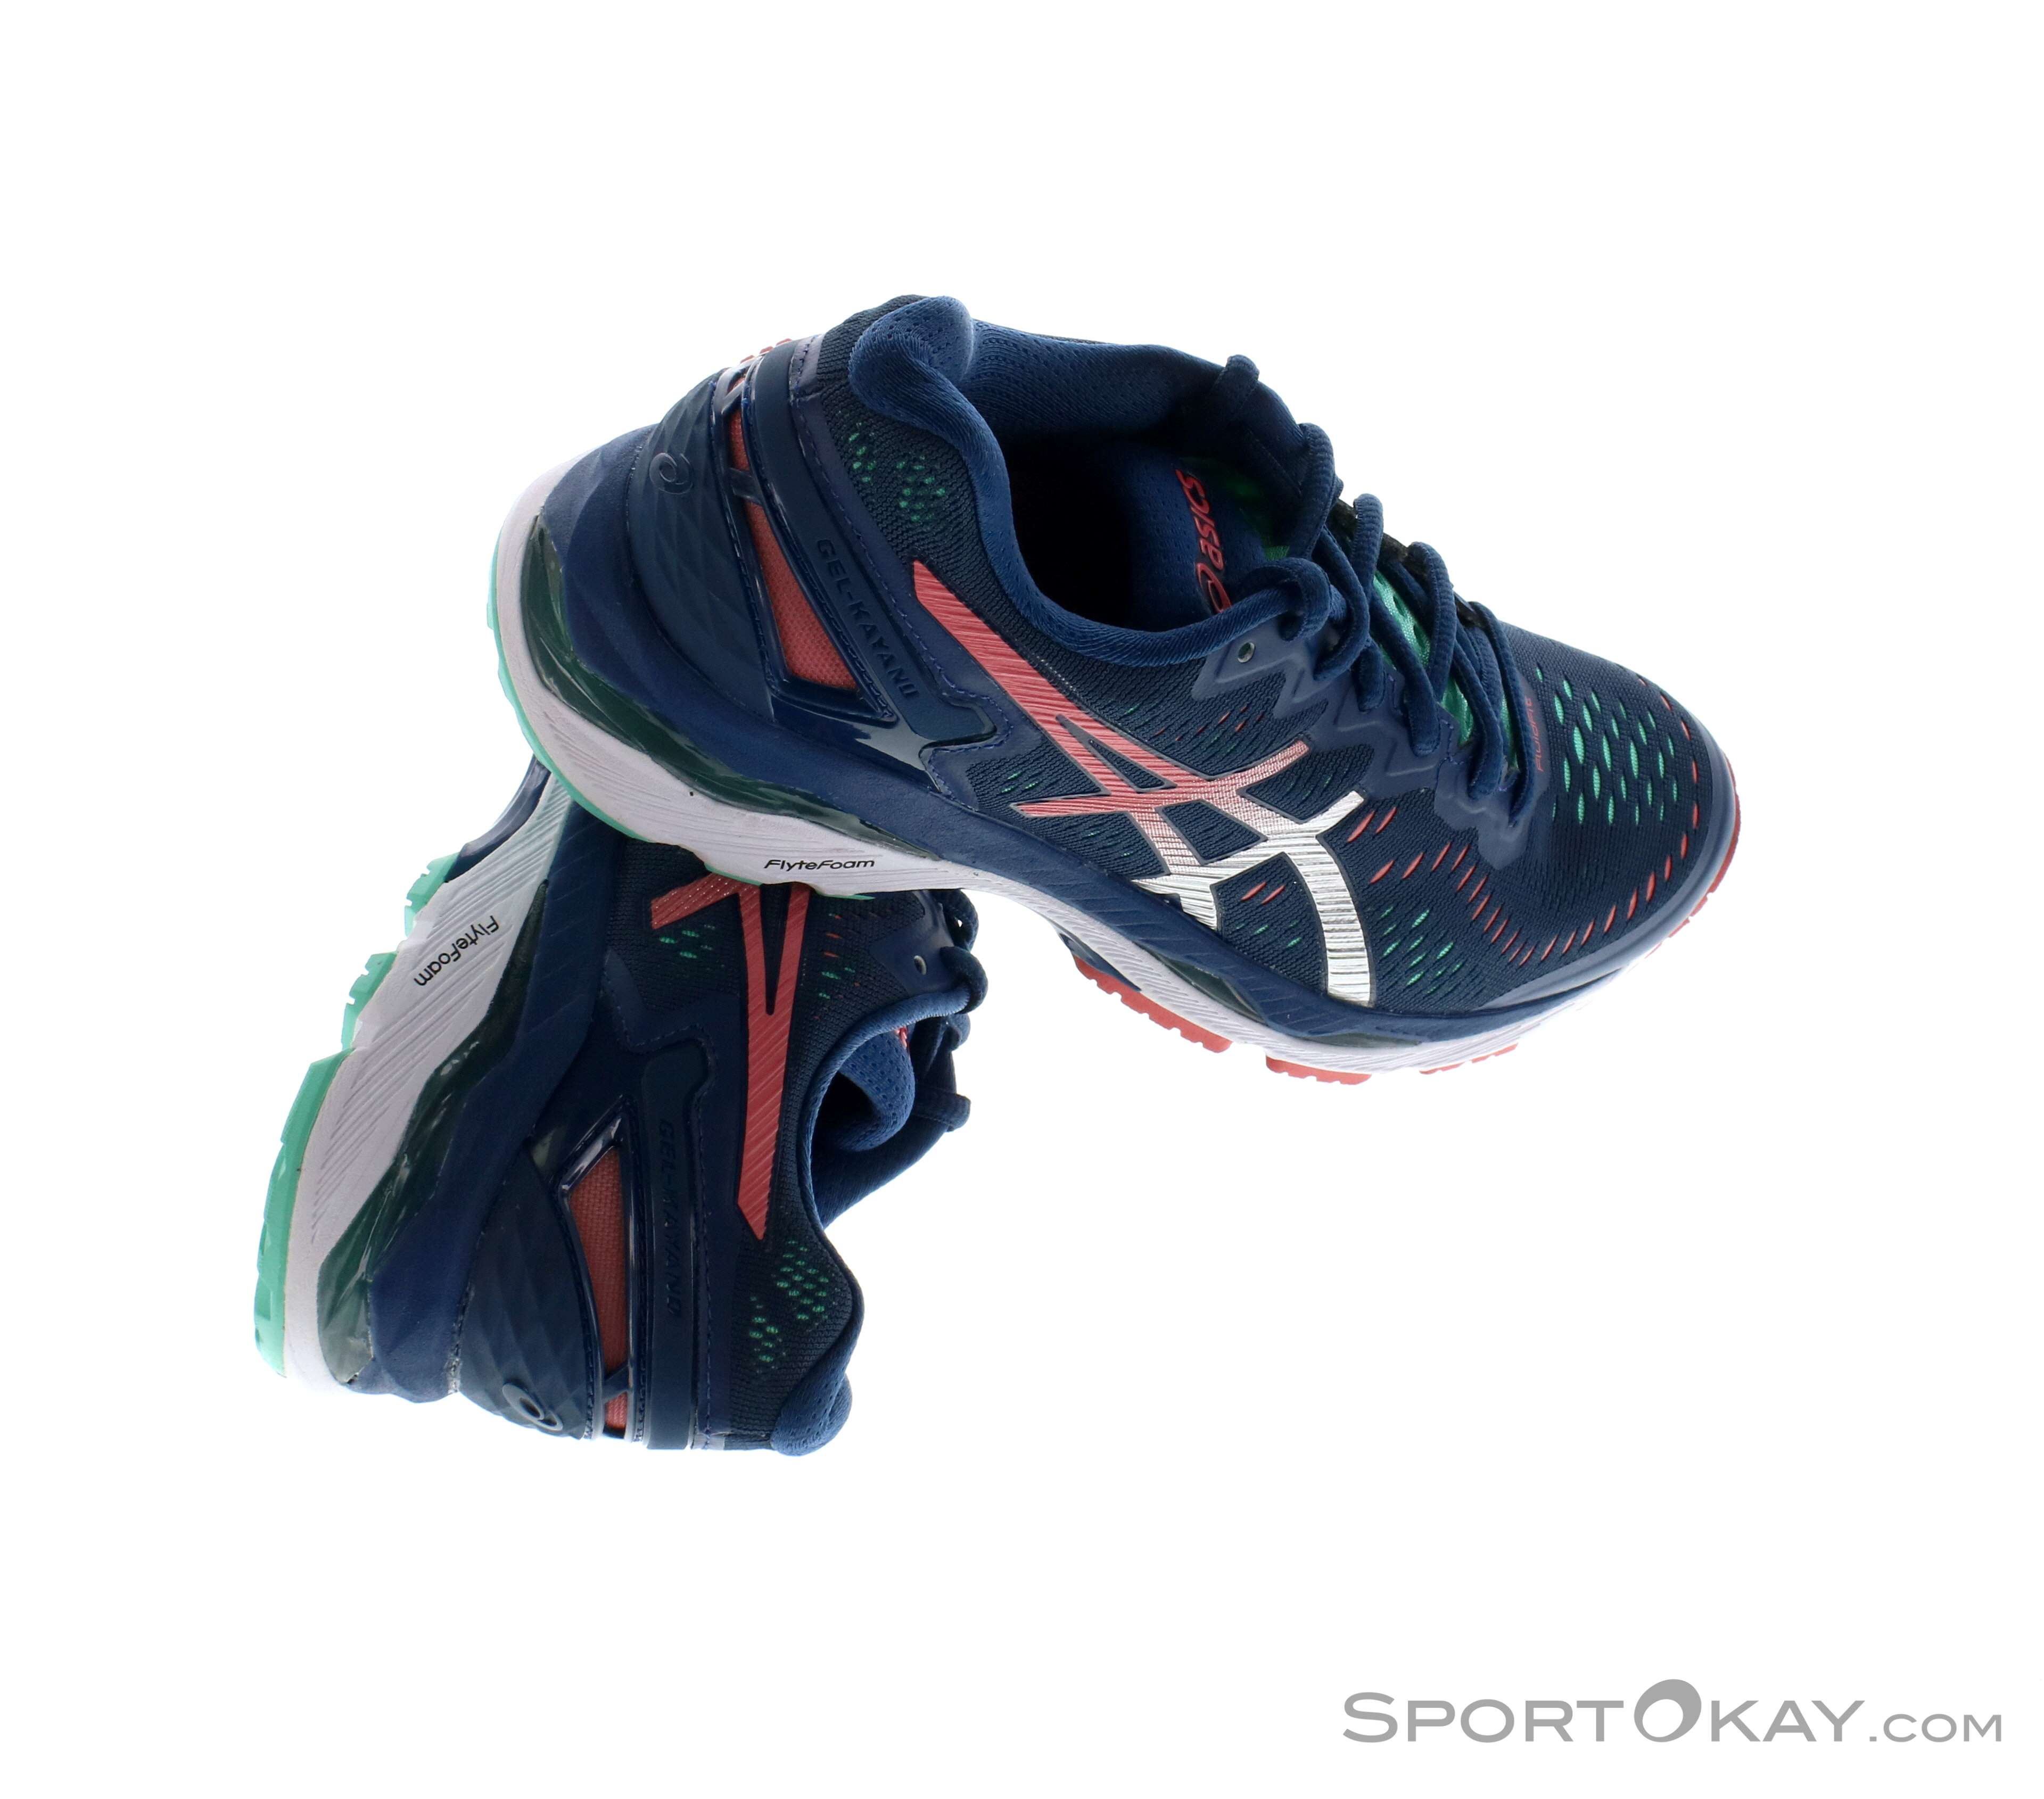 Asics Asics Gel Kayano 23 Womens Running Shoes